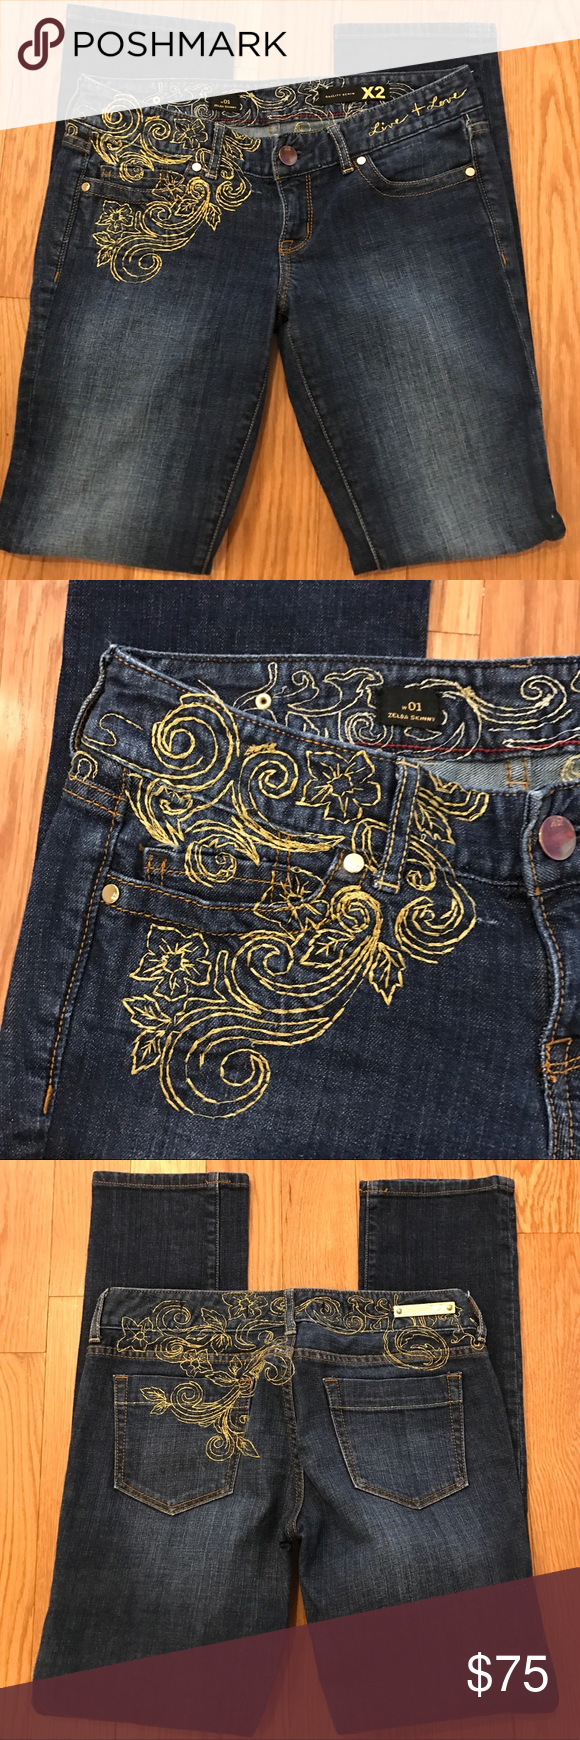 Express X2 Skinnies W Gold Embroidery